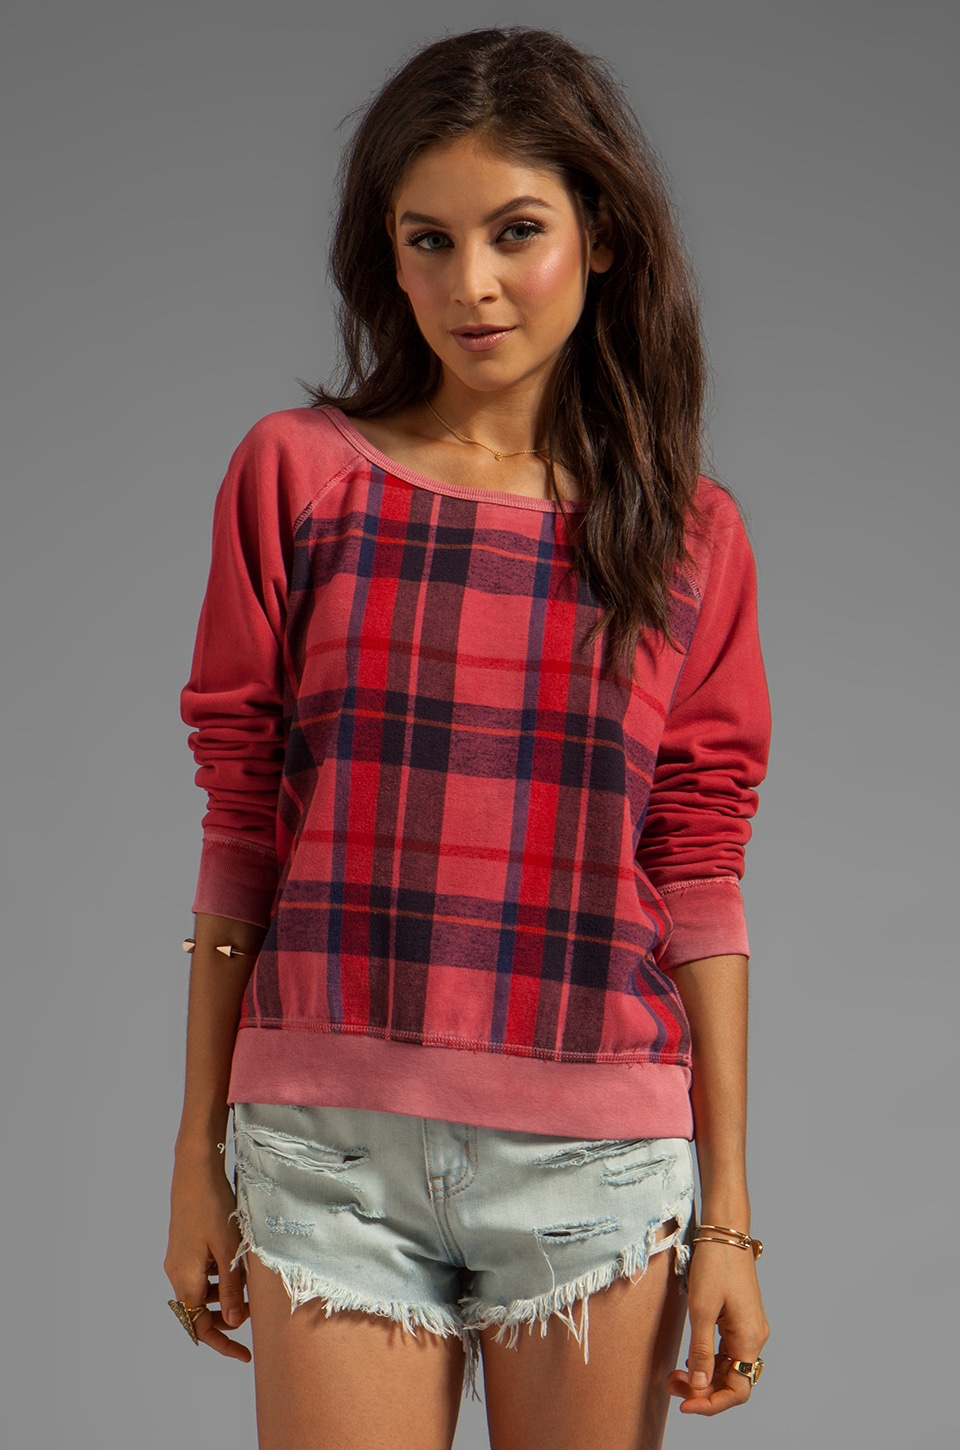 TEXTILE Elizabeth and James Perfect Sweatshirt in Flannel Red